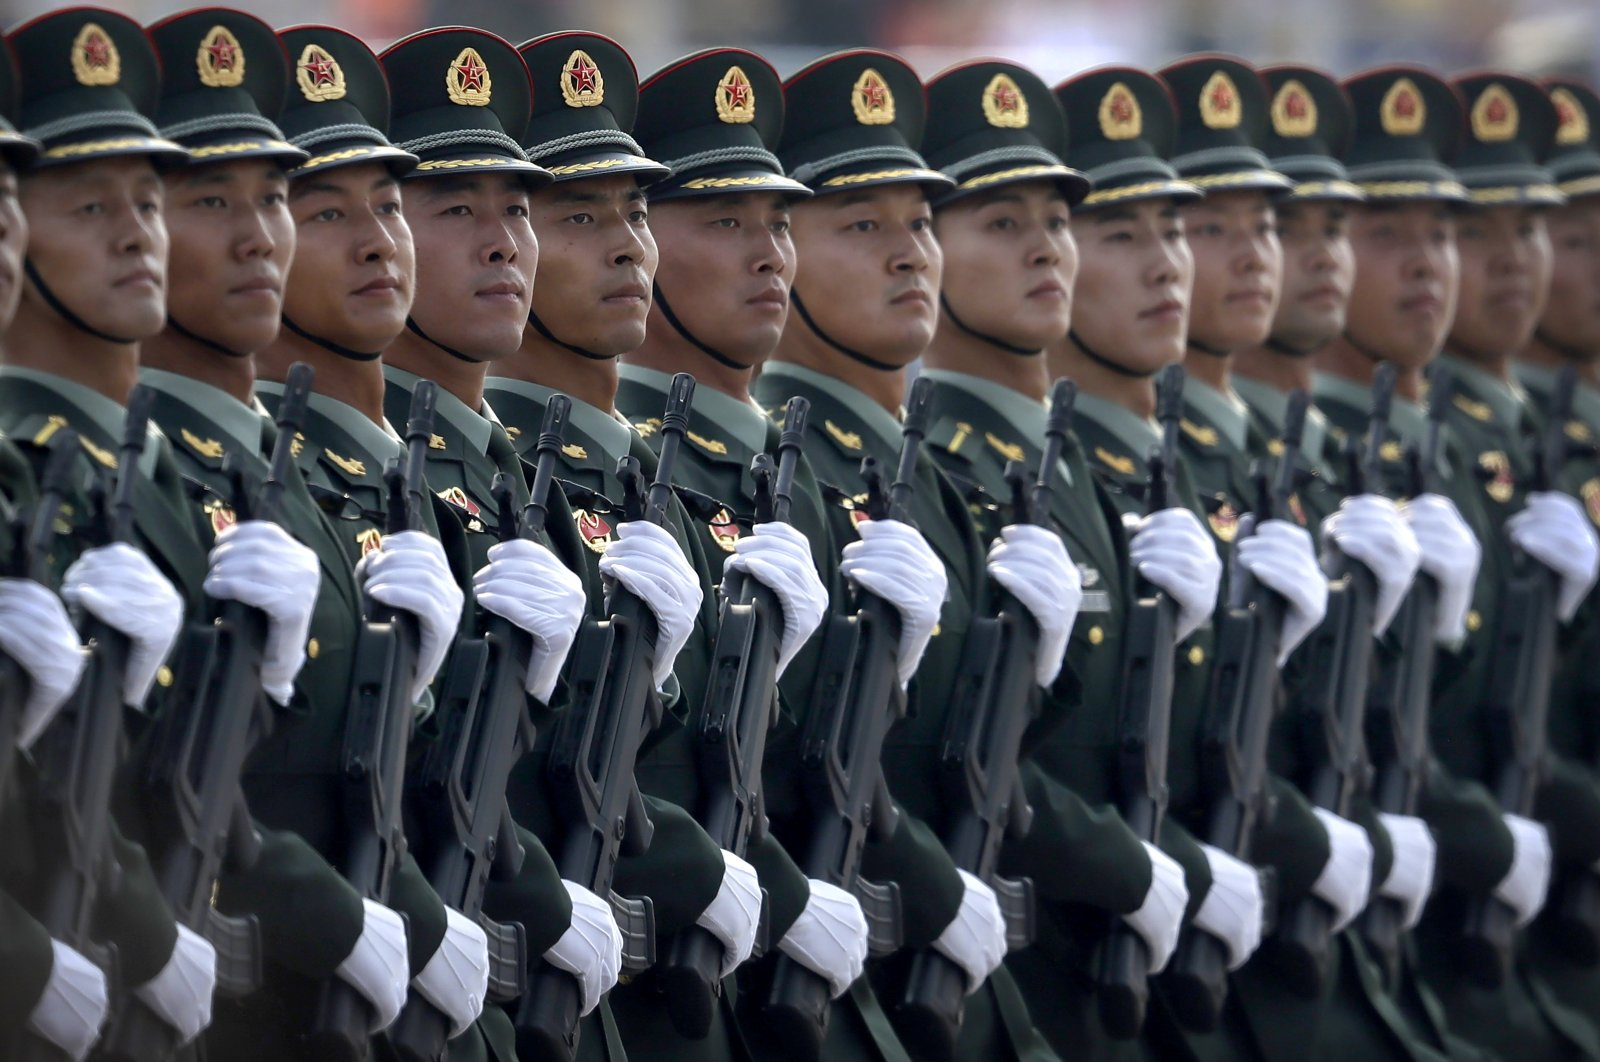 Chinese People's Liberation Army (PLA) soldiers march in formation during a parade to commemorate the 70th anniversary of the founding of the People's Republic of China in Beijing, China, Oct. 1, 2019. (AP Photo)